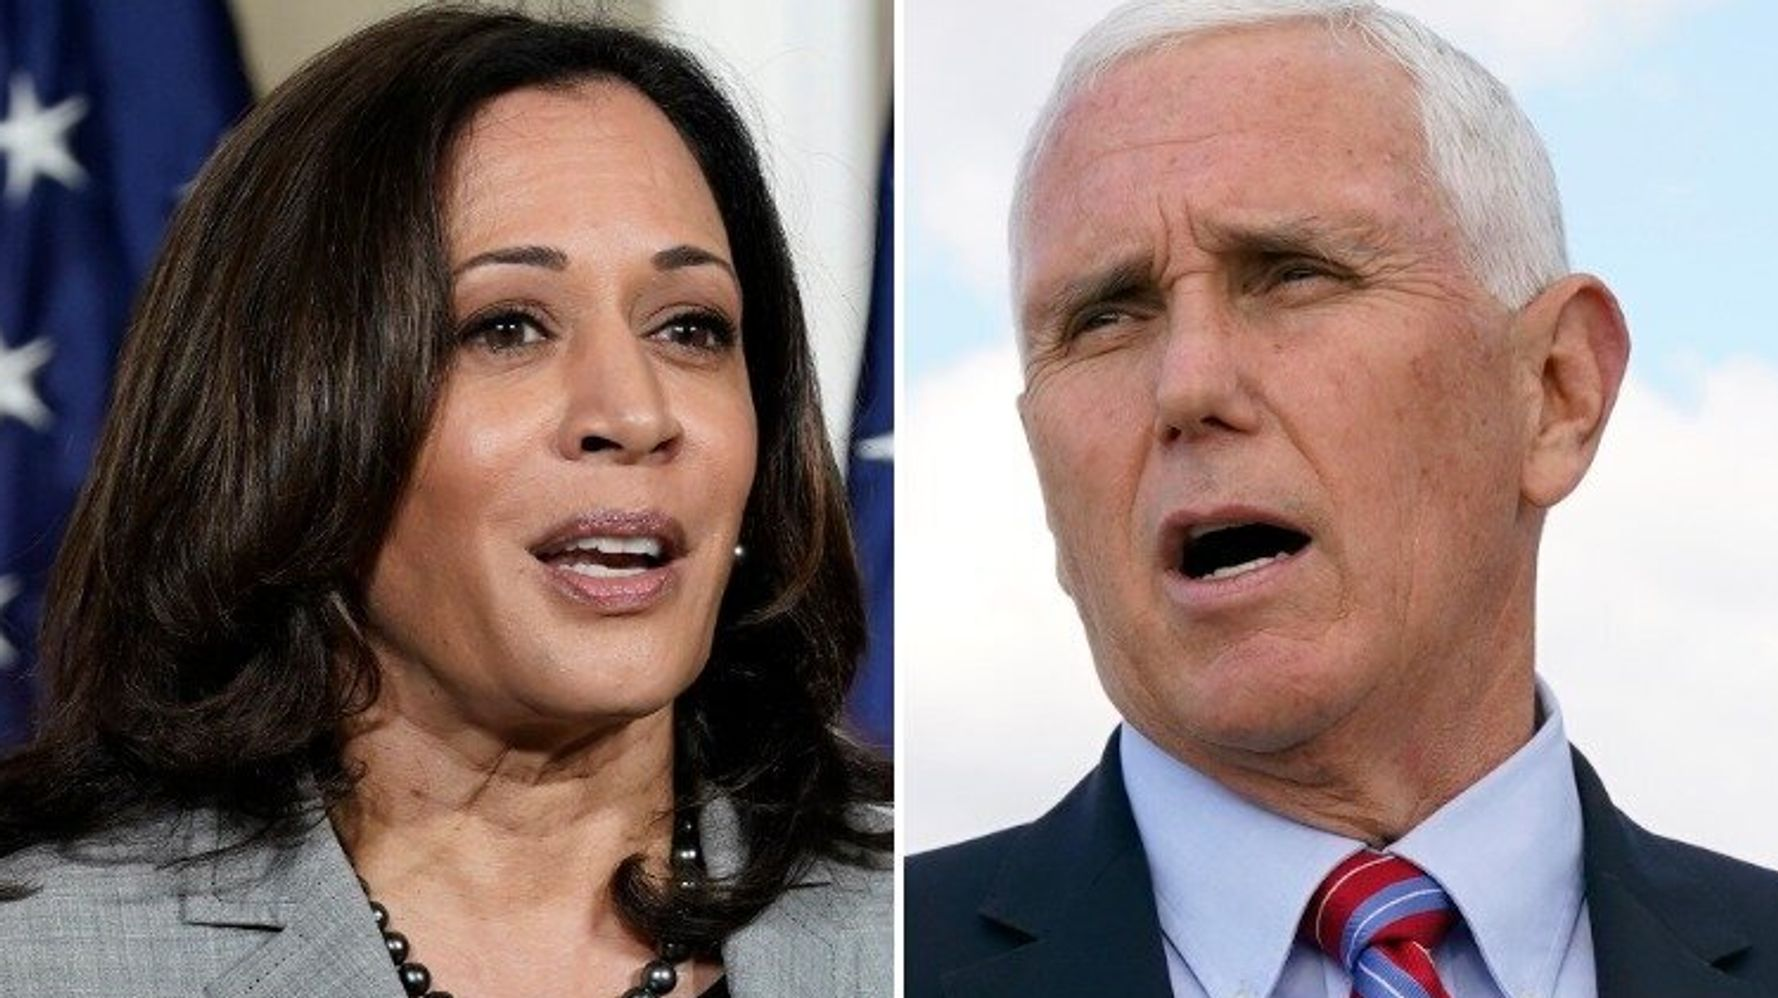 Mike Pence Congratulates Kamala Harris 73 Days After Election Win